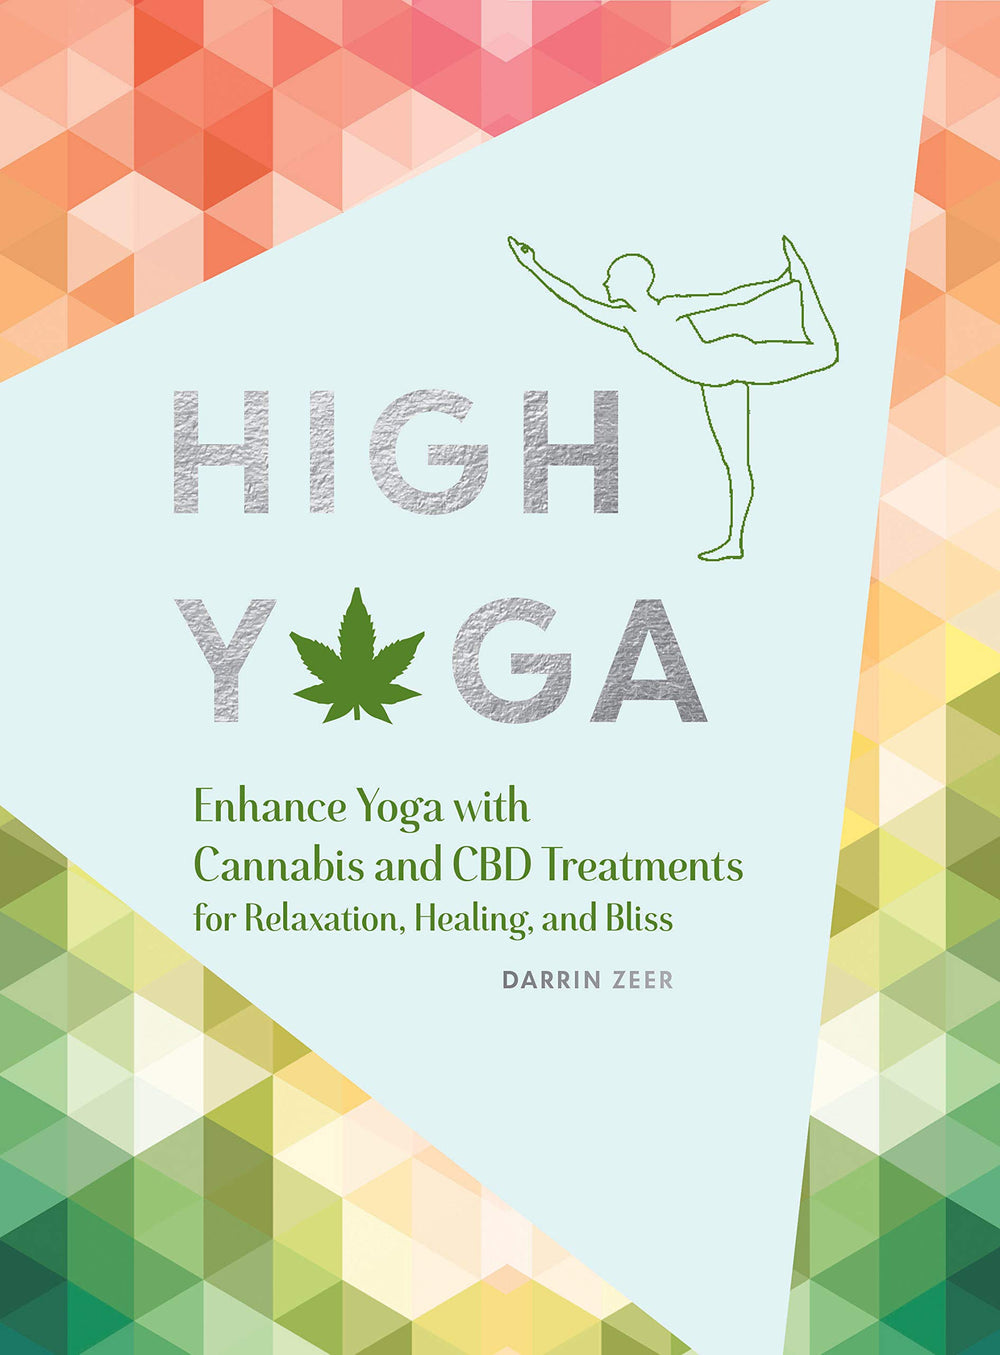 High Yoga: Enhance Yoga with Cannabis for Relaxation, Healing, and Bliss by Darrin Zeer